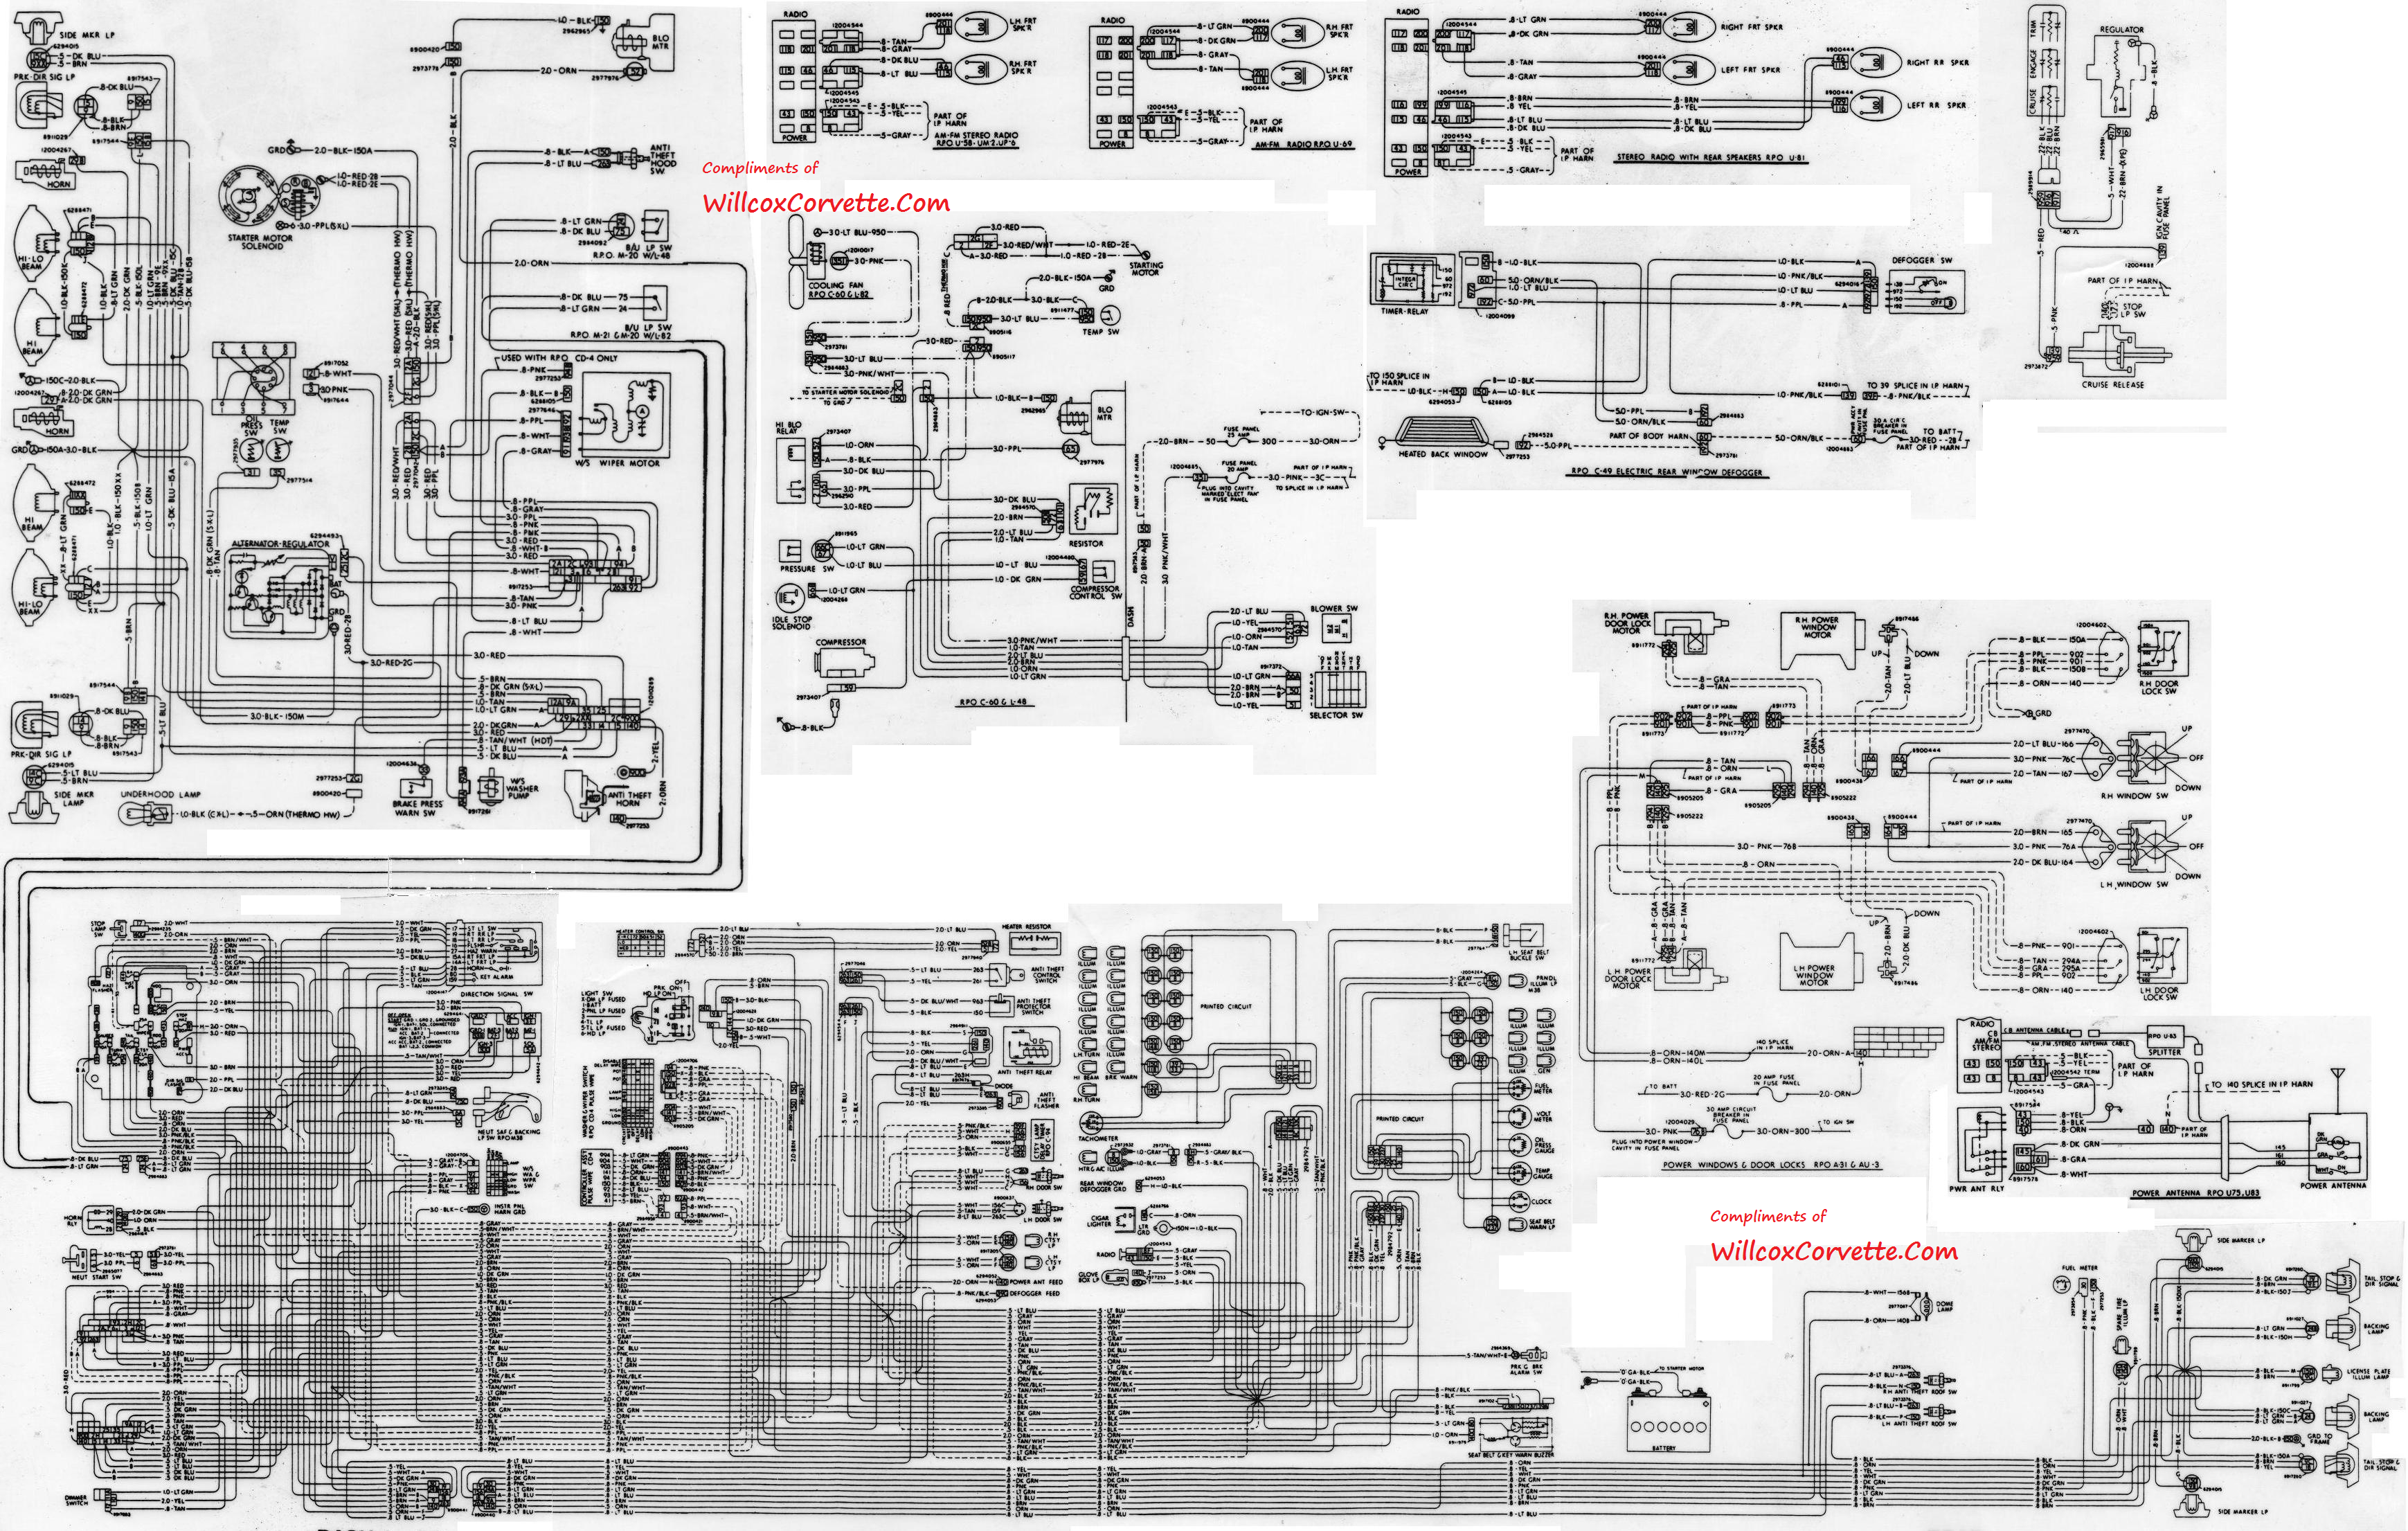 79 COMBINED TRACER SCHEMATIC 1975 corvette wiper diagram 2013 corvette \u2022 wiring diagrams j corvette electrical diagrams at mifinder.co